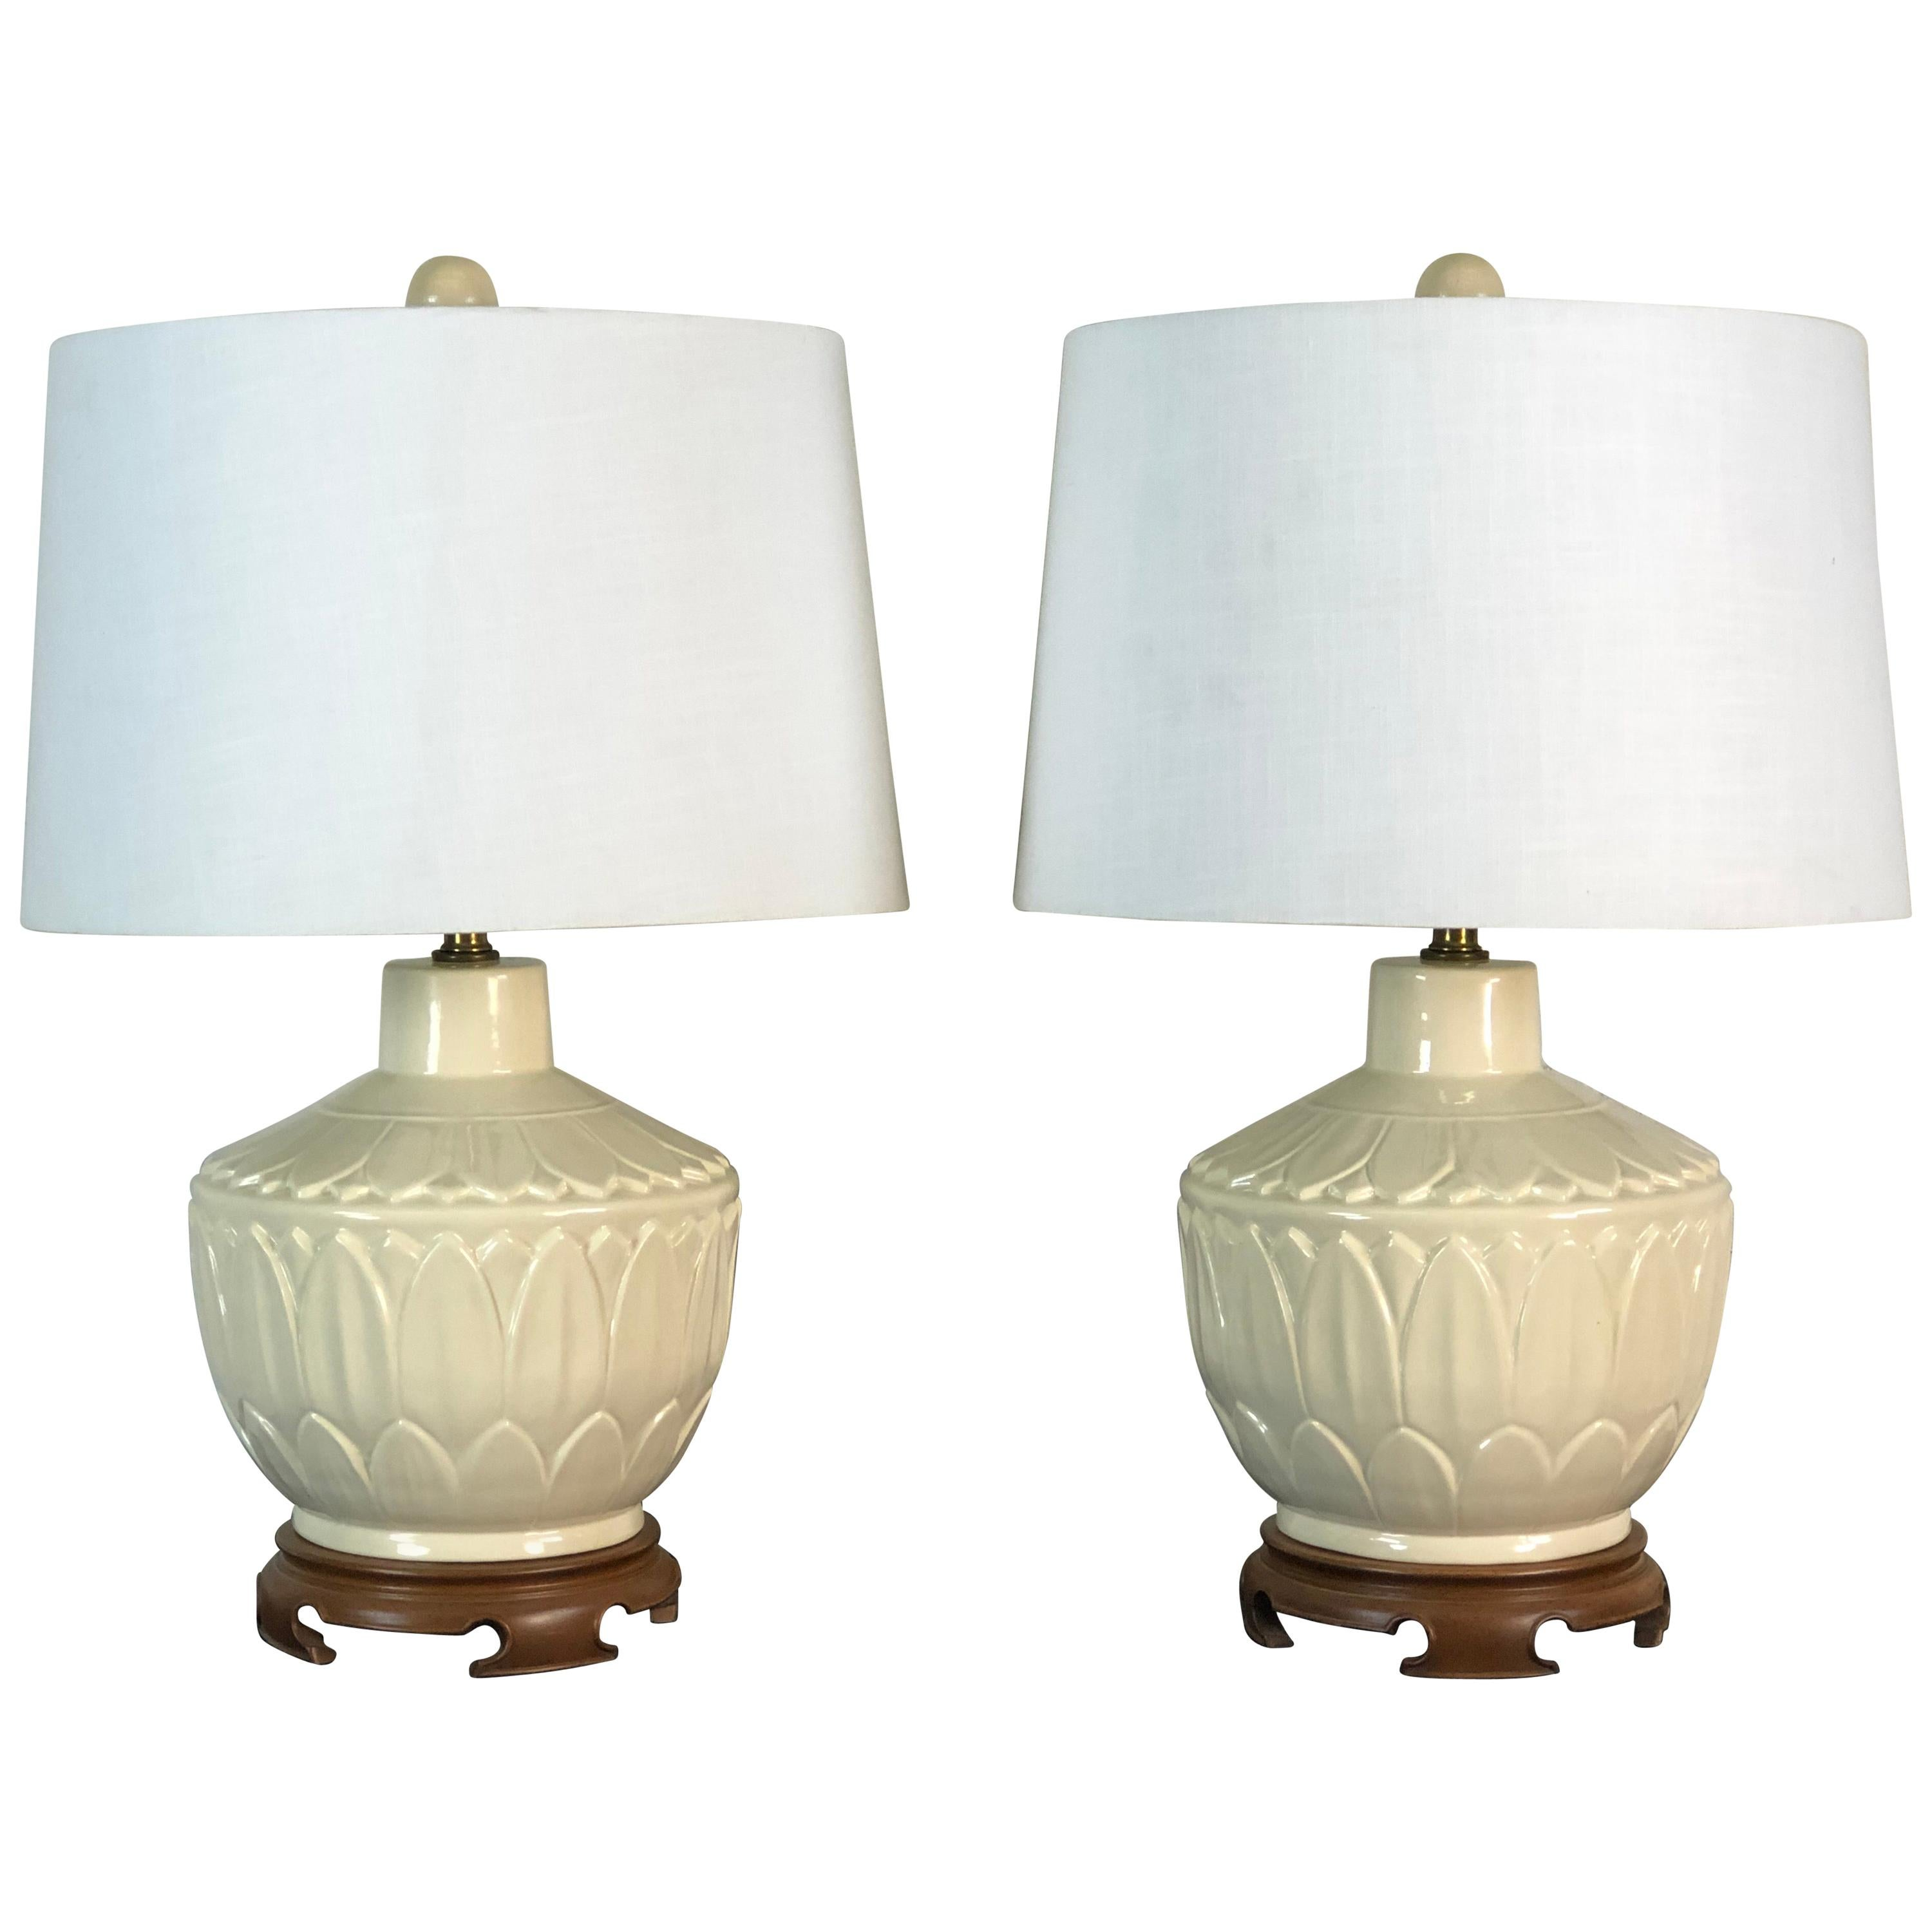 Antique And Vintage Table Lamps   30,017 For Sale At 1stdibs